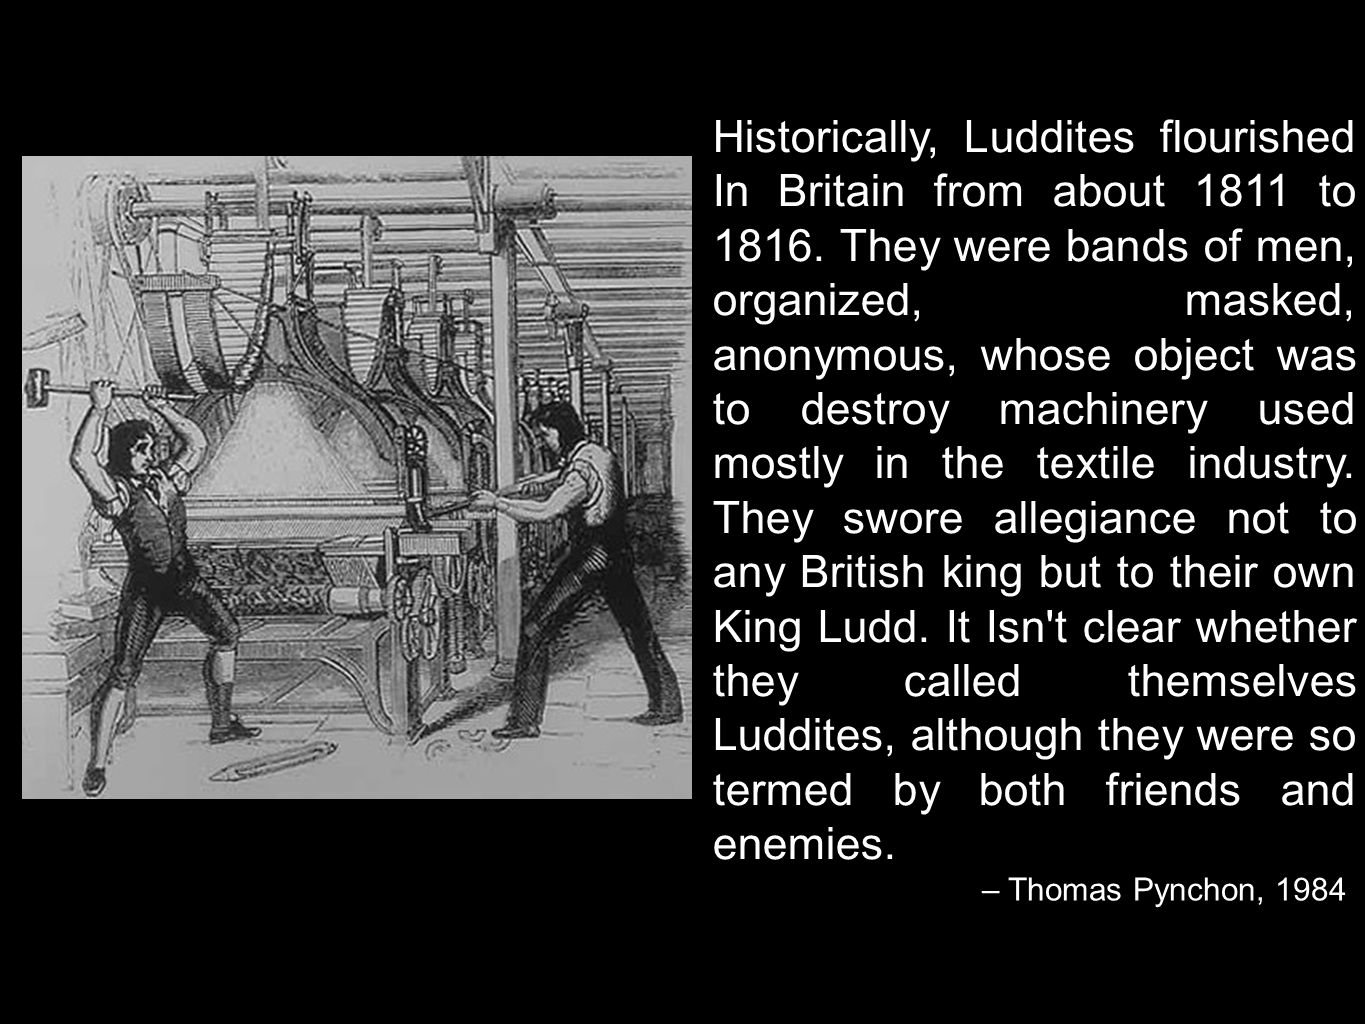 Historically, Luddites flourished In Britain from about 1811 to 1816. They were bands of men, organized, masked, anonymous, whose object was to destro